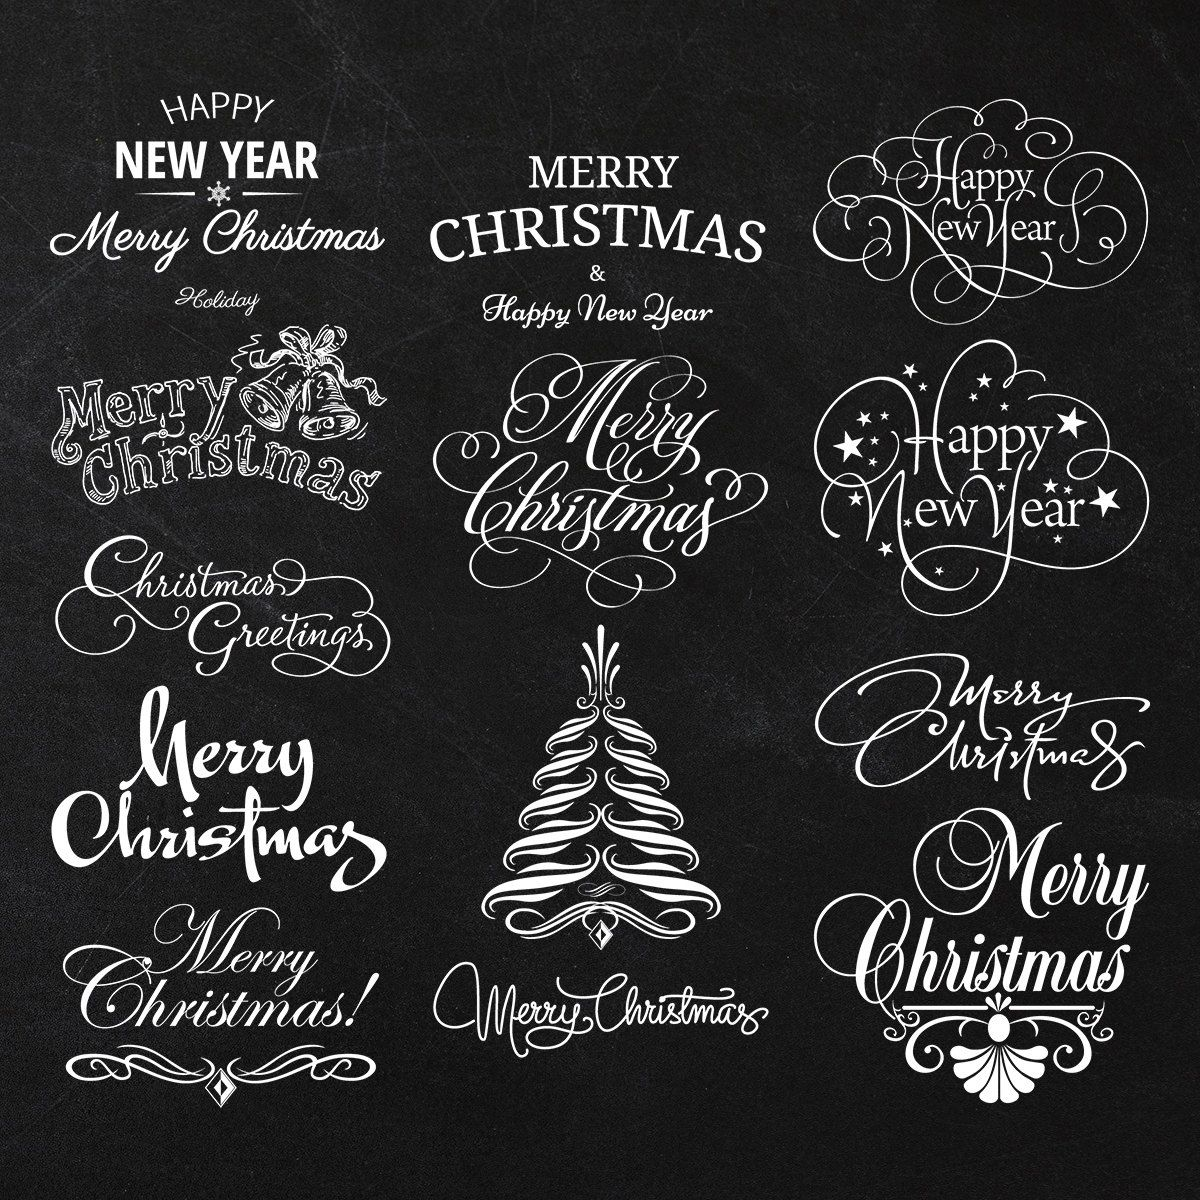 instant download calligraphy merry christmas and happy new year set hand lettering digital clip art card making december 31 2013 at 0203am